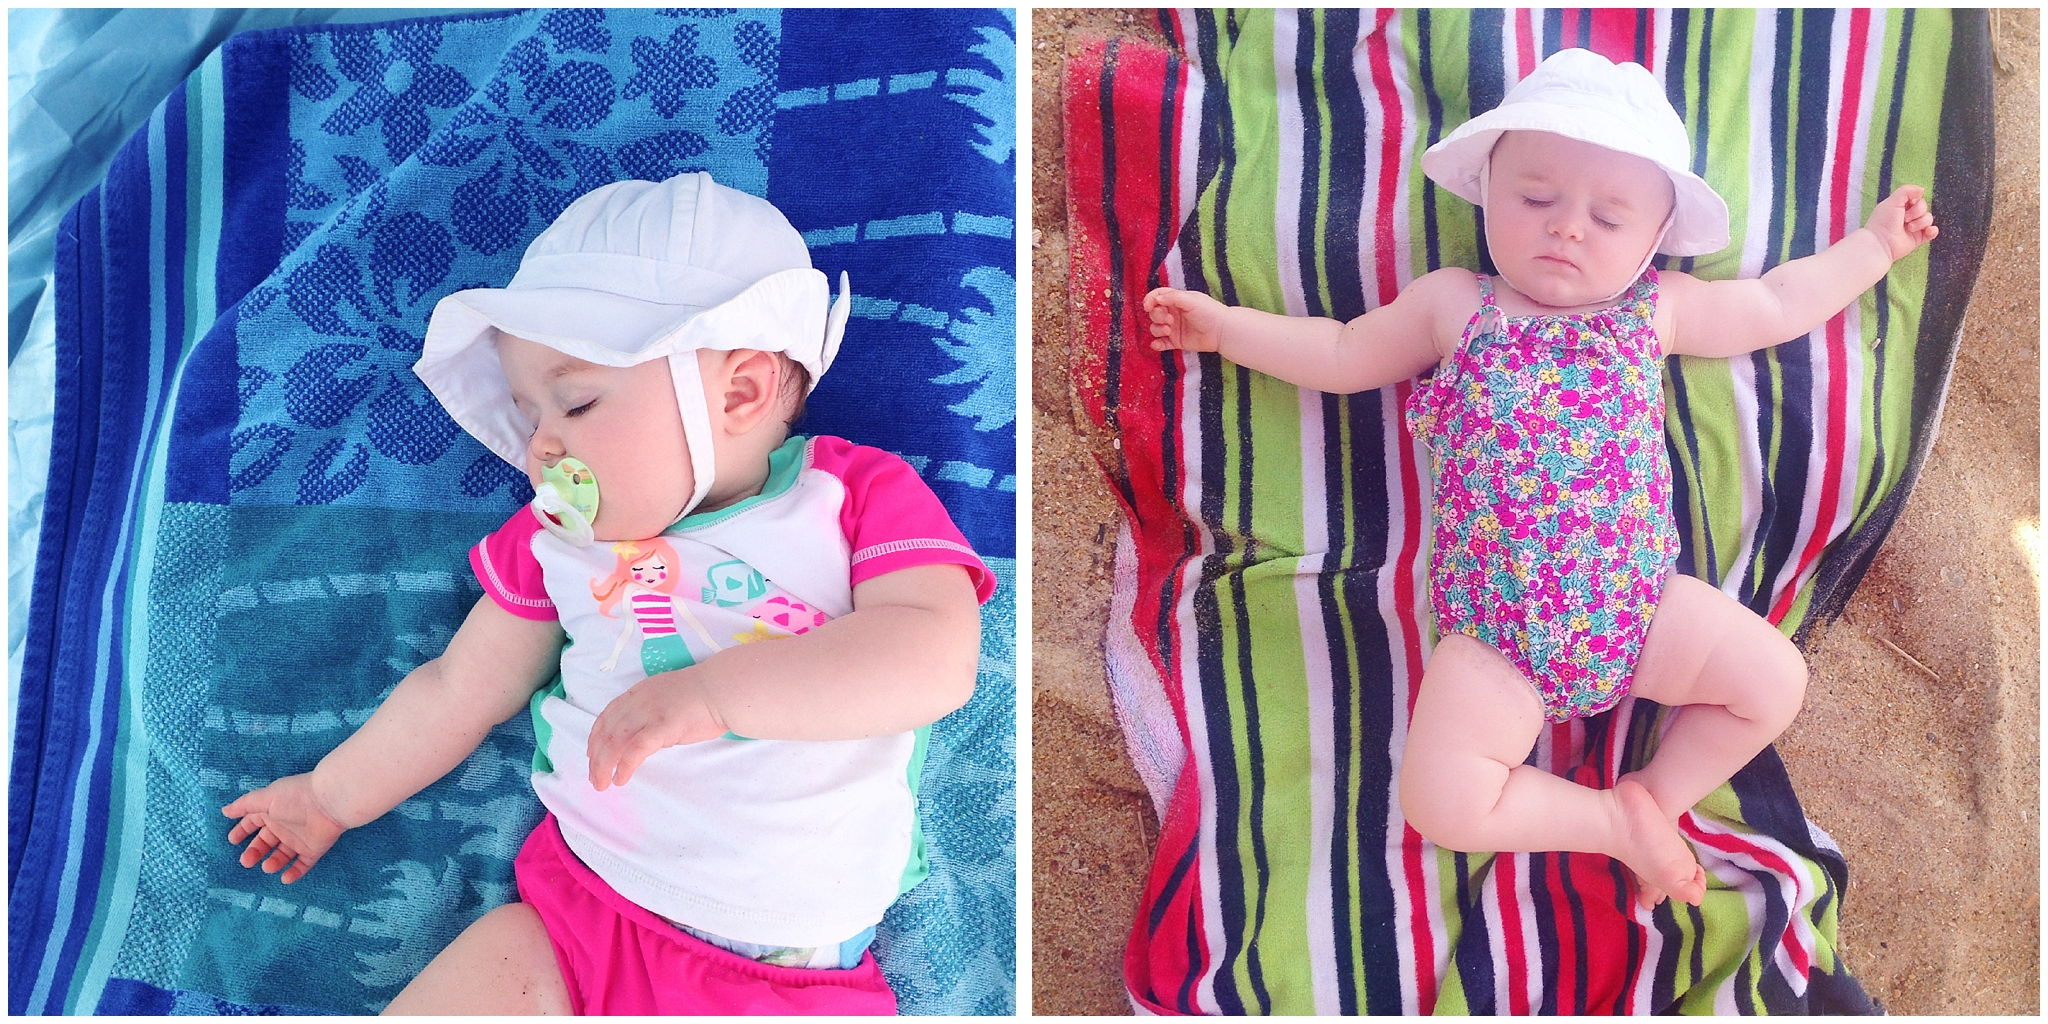 baby girl napping on beach towel